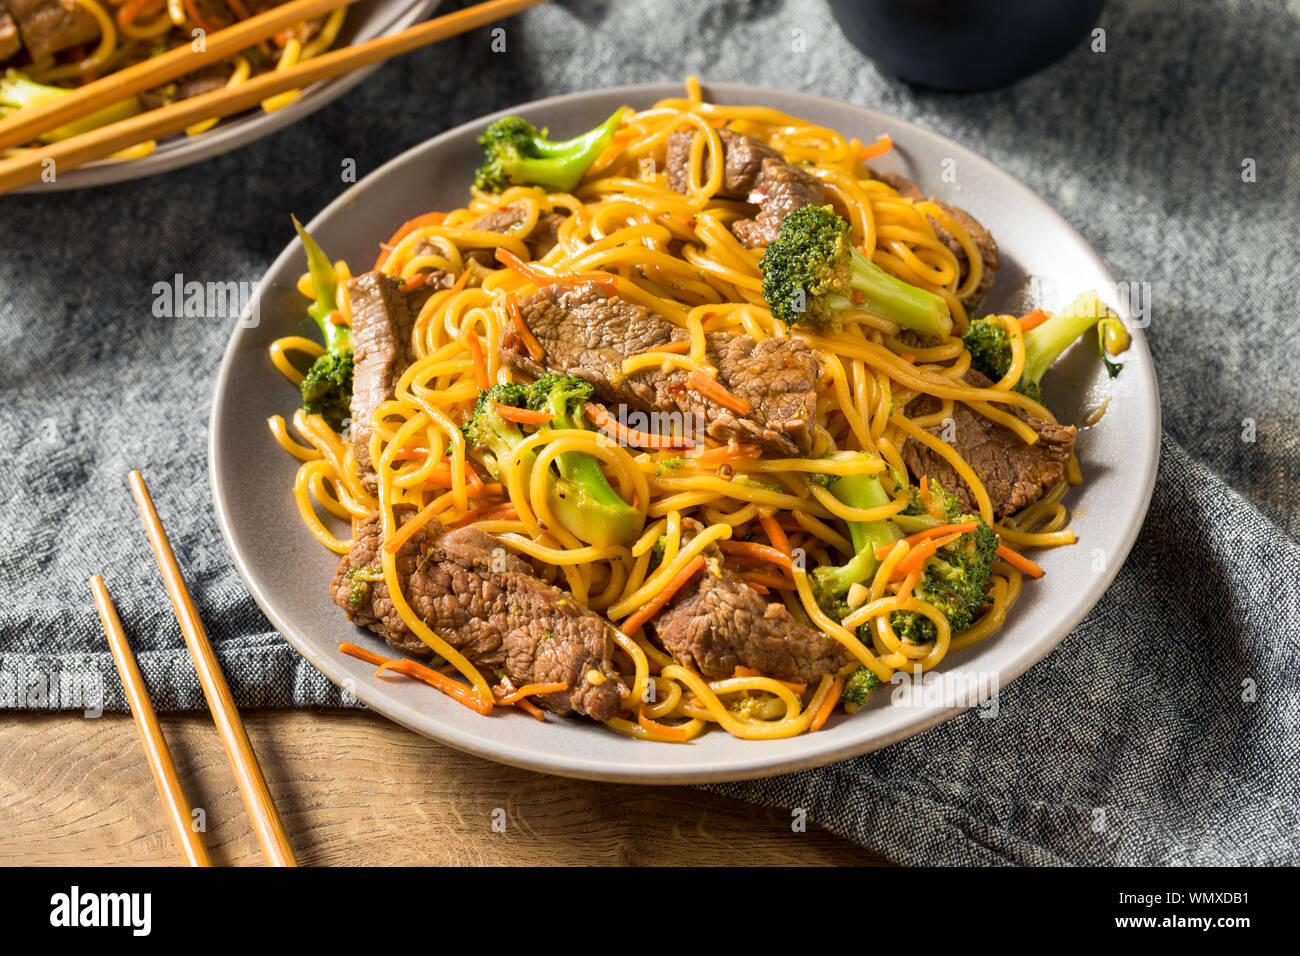 Homemade Beef Lo Mein Noodles With Carrots And Broccoli Stock Photo Alamy